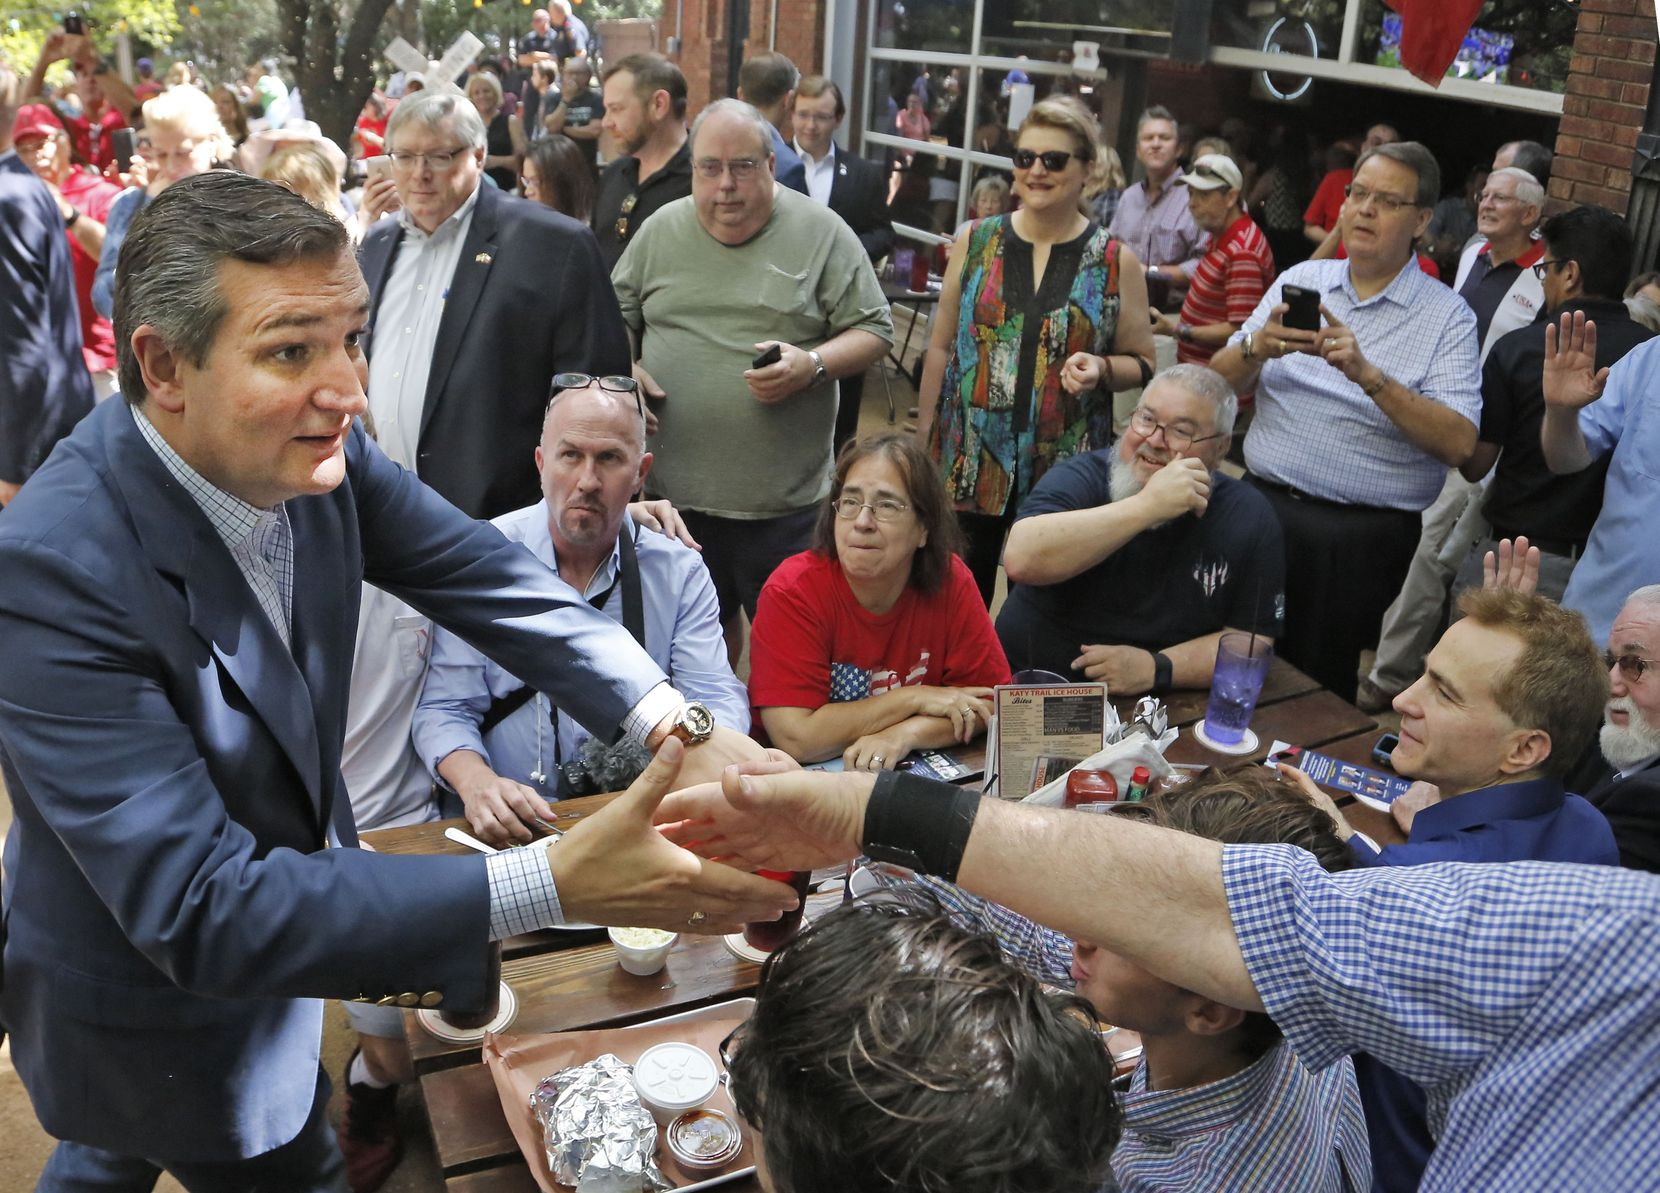 Sen.Ted Cruz works the crowd as he campaigns at the Katy Trail Ice House Outpost in Plano on Thursday, Oct. 4, 2018.